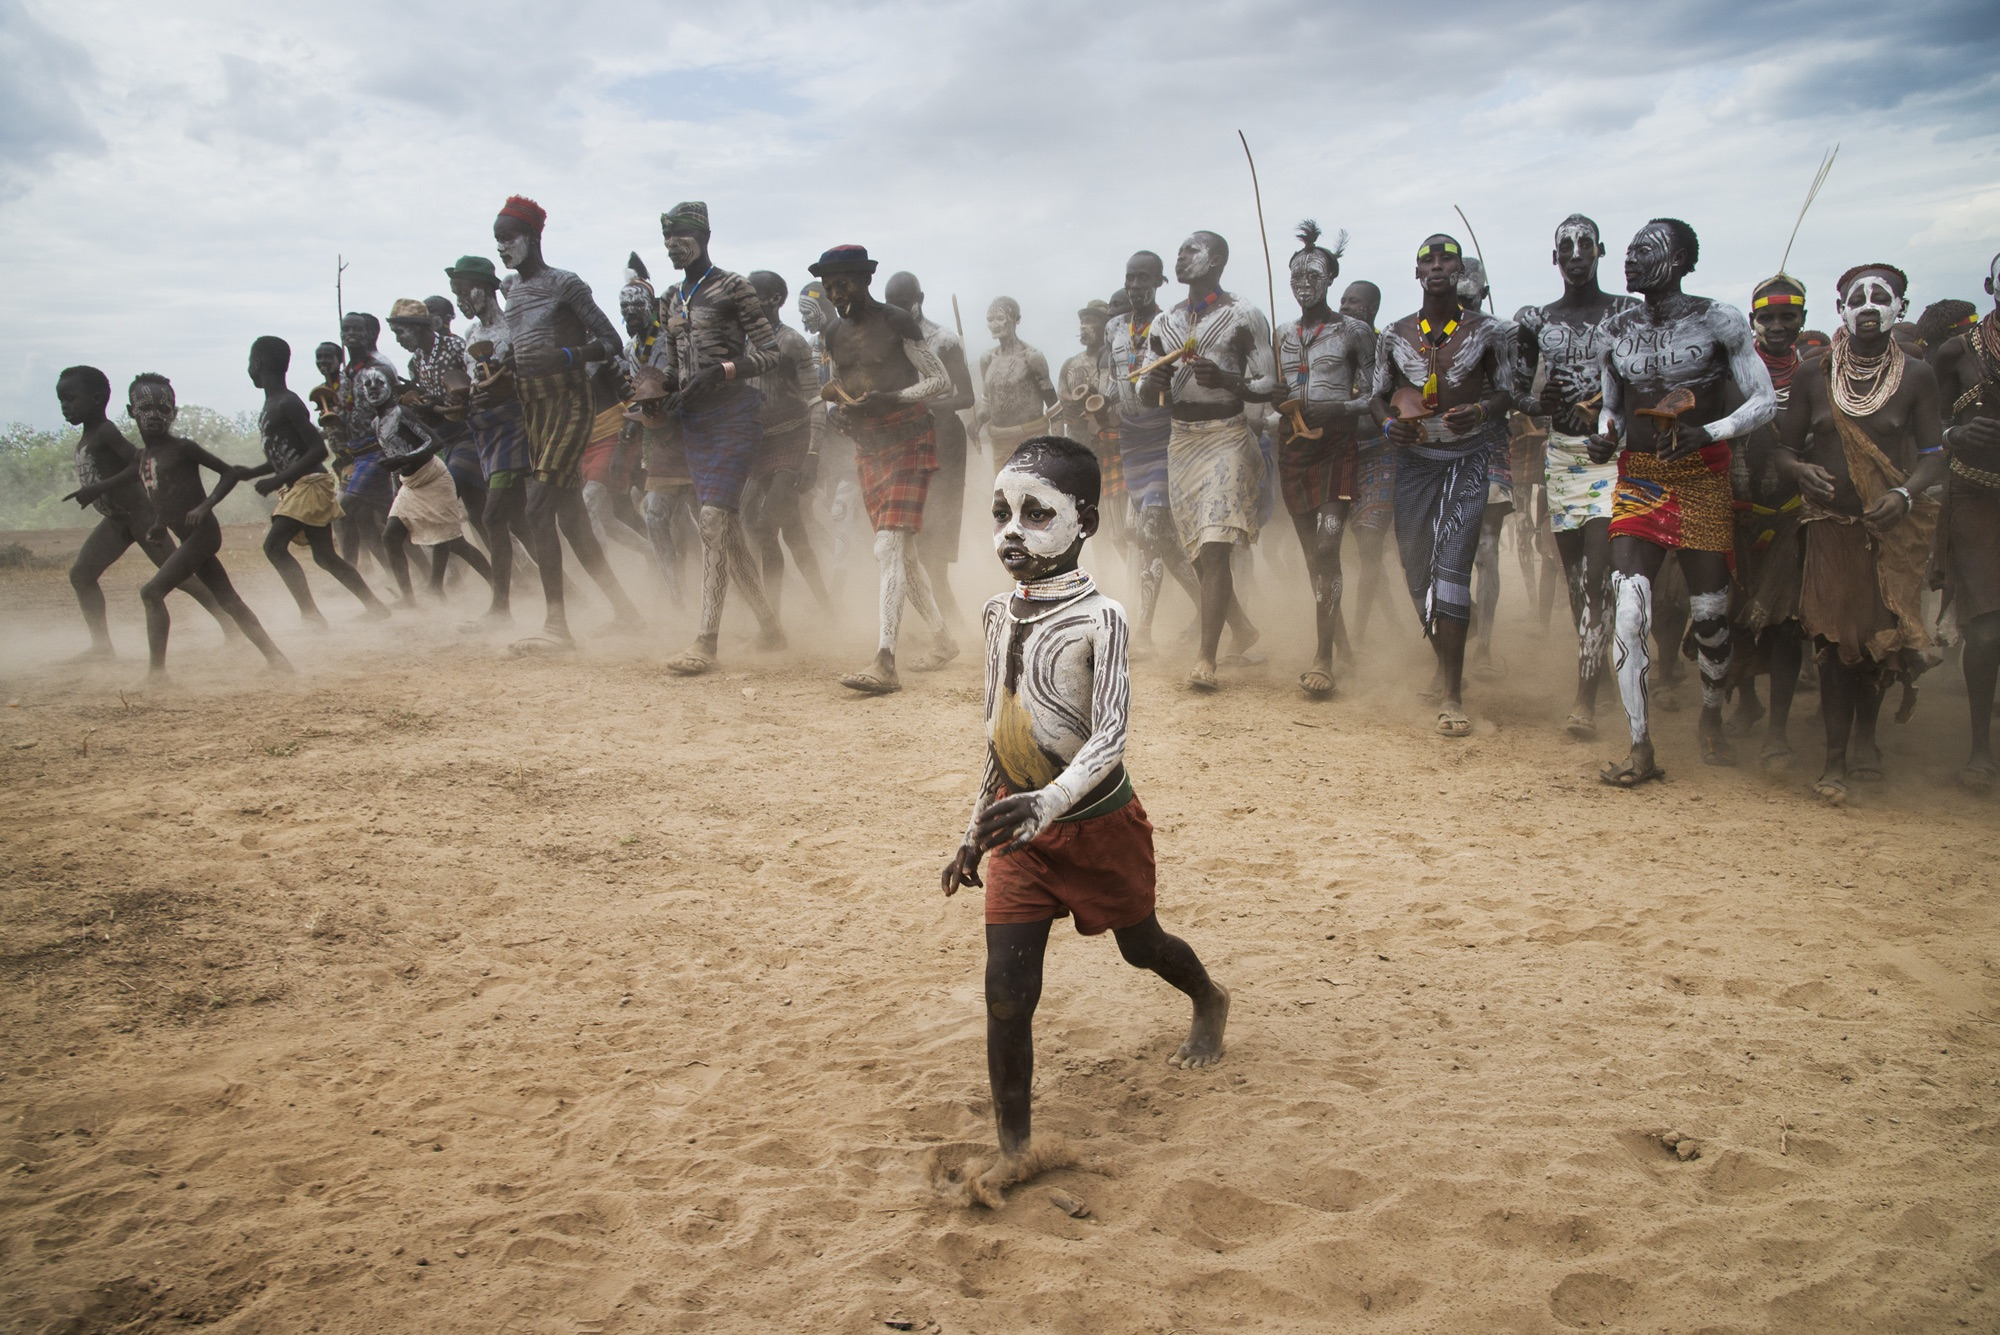 foto: © Steve McCurry - p. 348 UNSEEN Omo Valley, Ethiopia, 2012